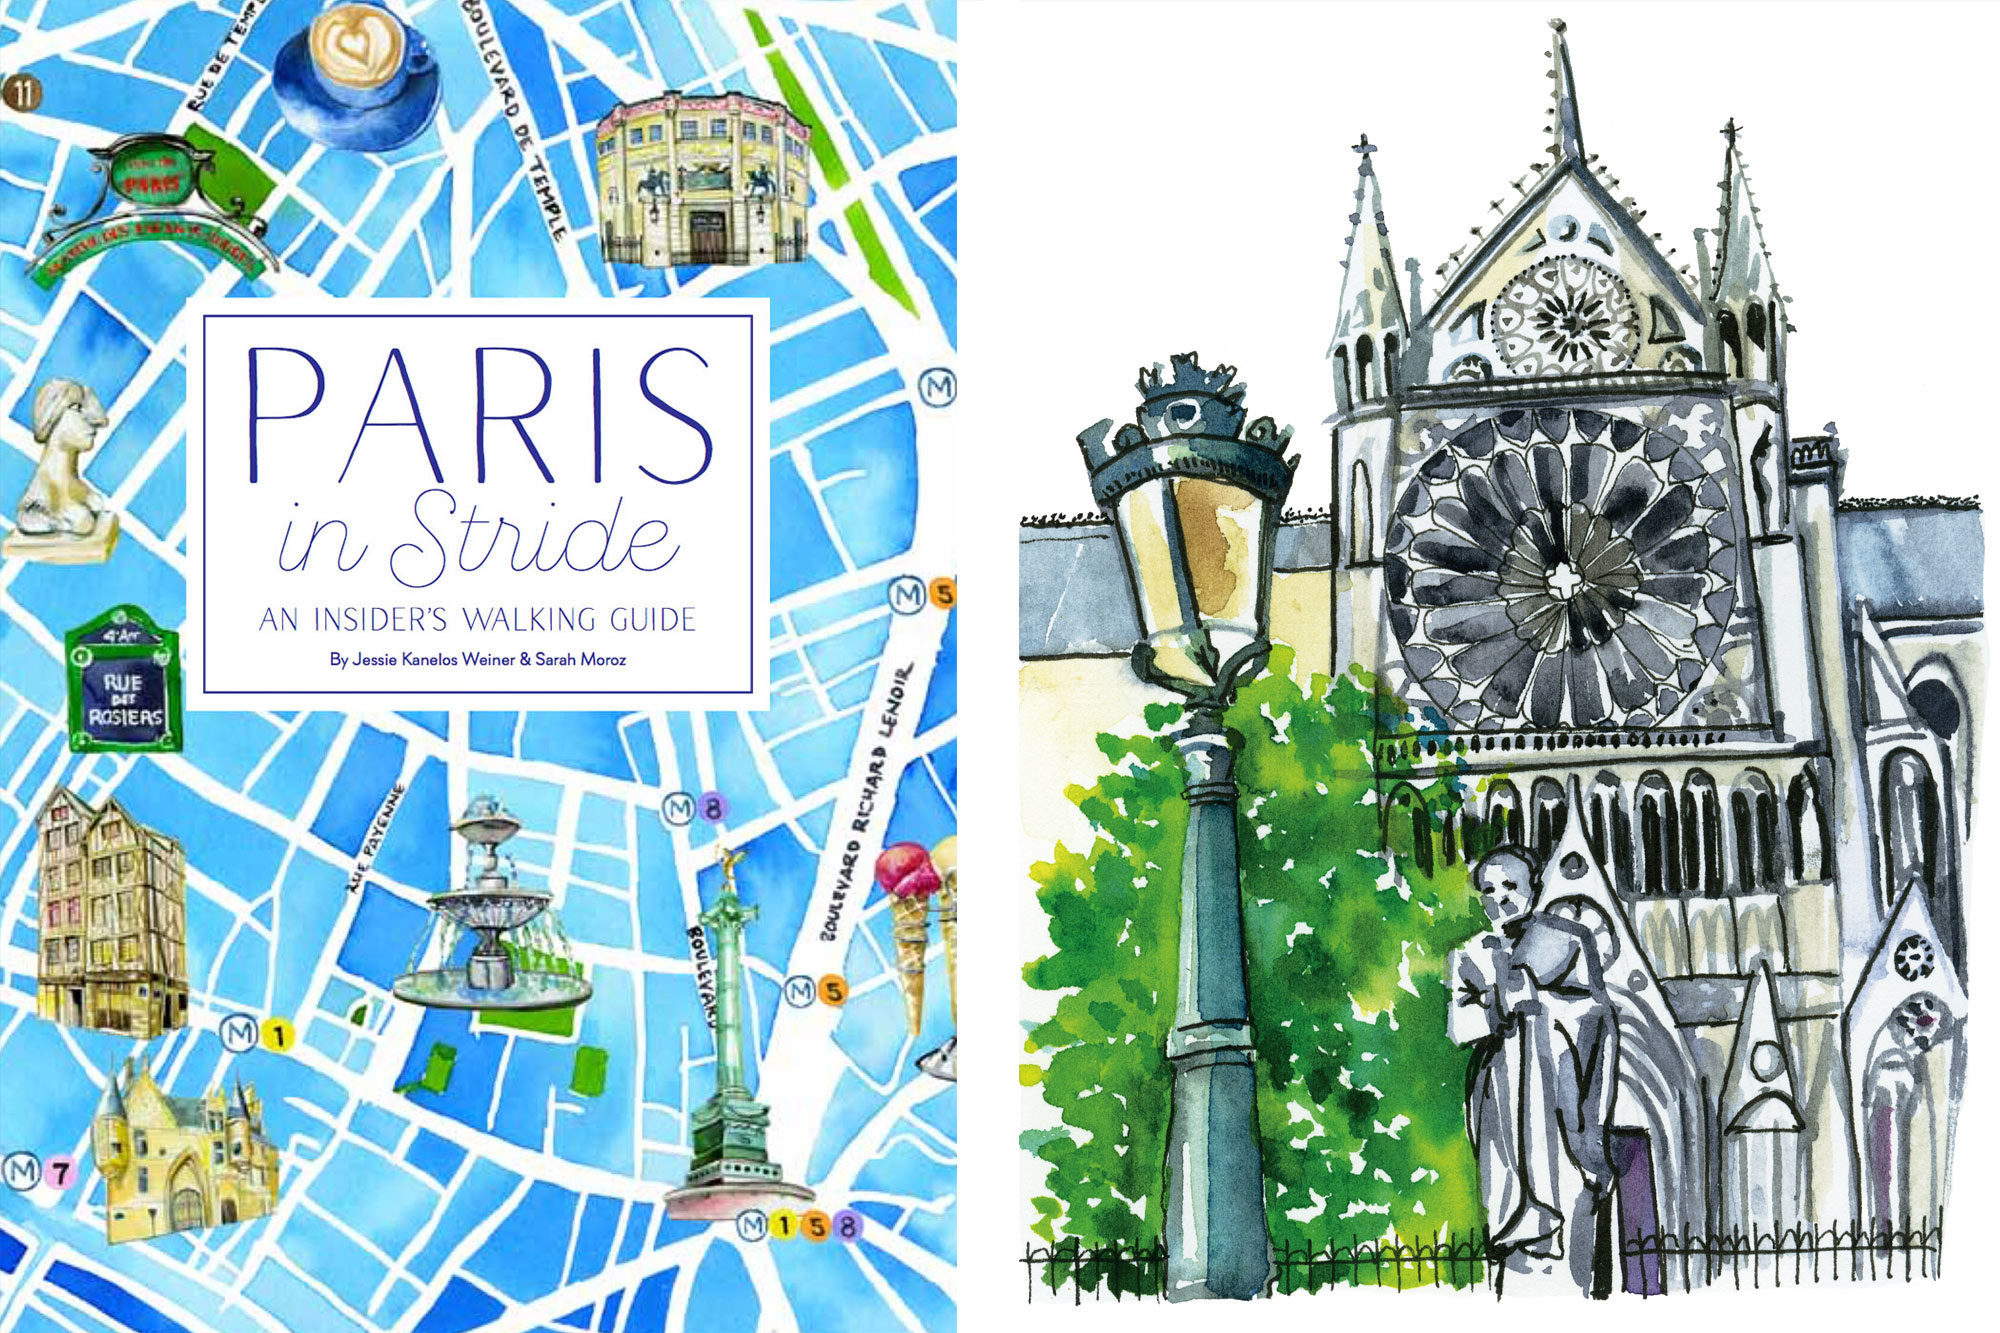 One of the best guidebooks on Paris, 'Paris in Stride' illustrated by Jessie Kanelos Weiner's watercolor paintings.